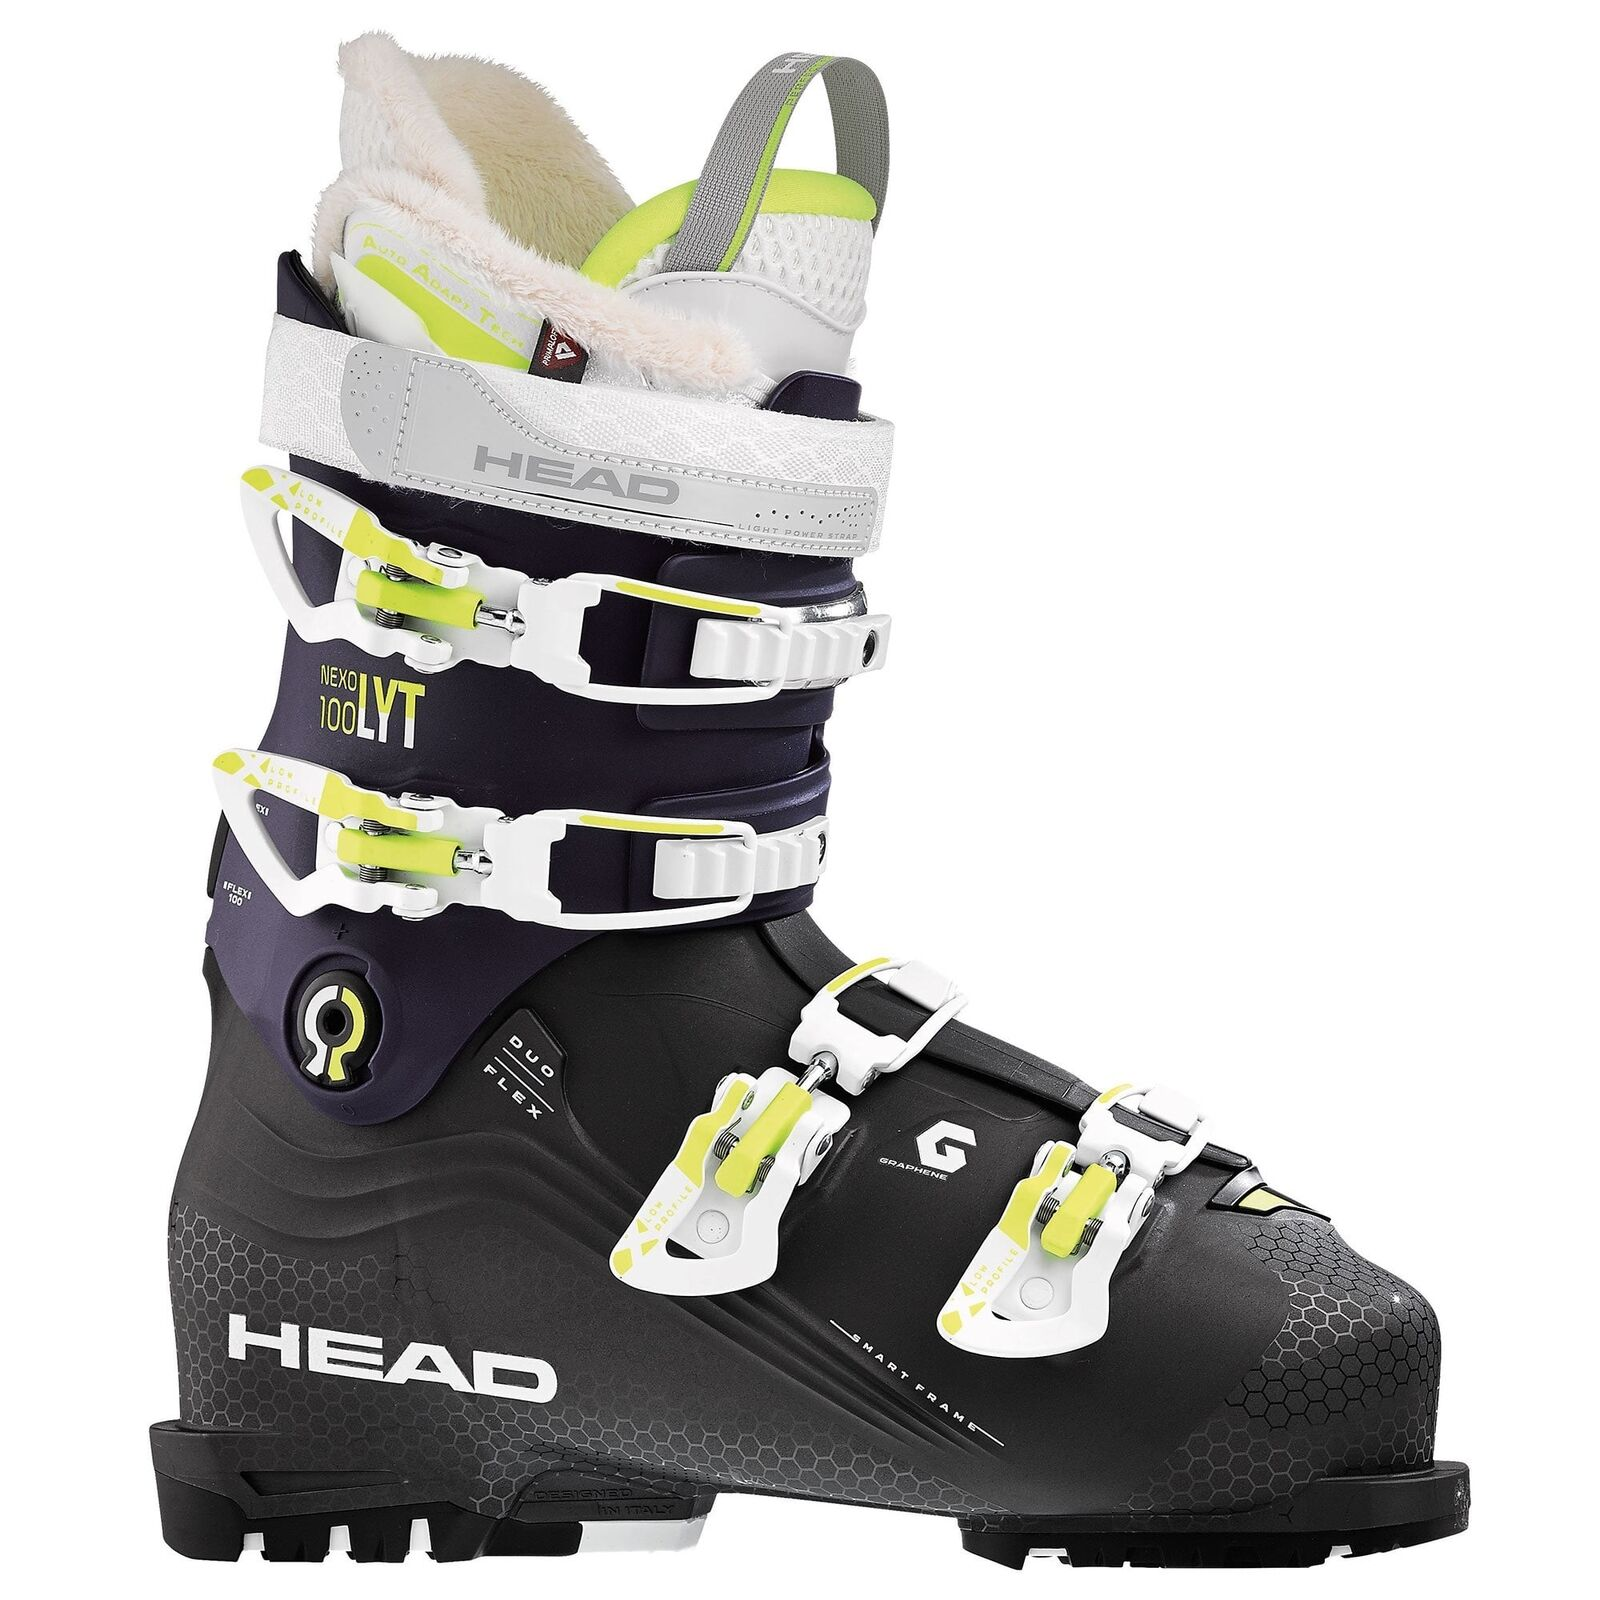 Head Nexo Lyt 100 Women's Ski Boot